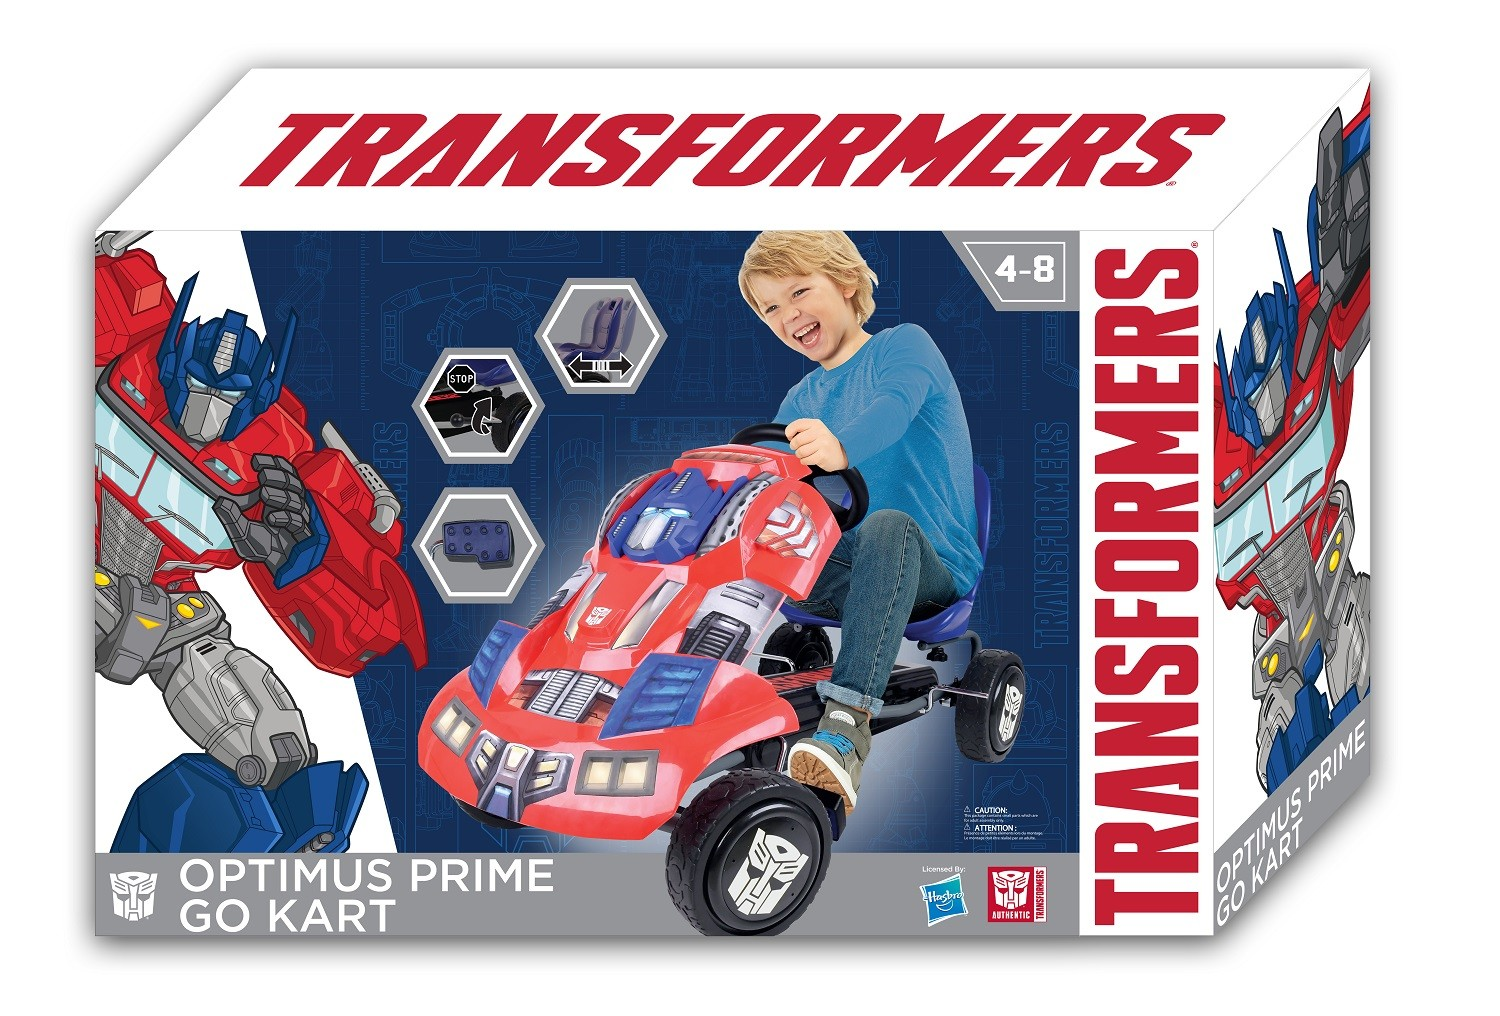 Transformers News: Re: Transformers G1 Themed Go Karts found at Walmart in the US